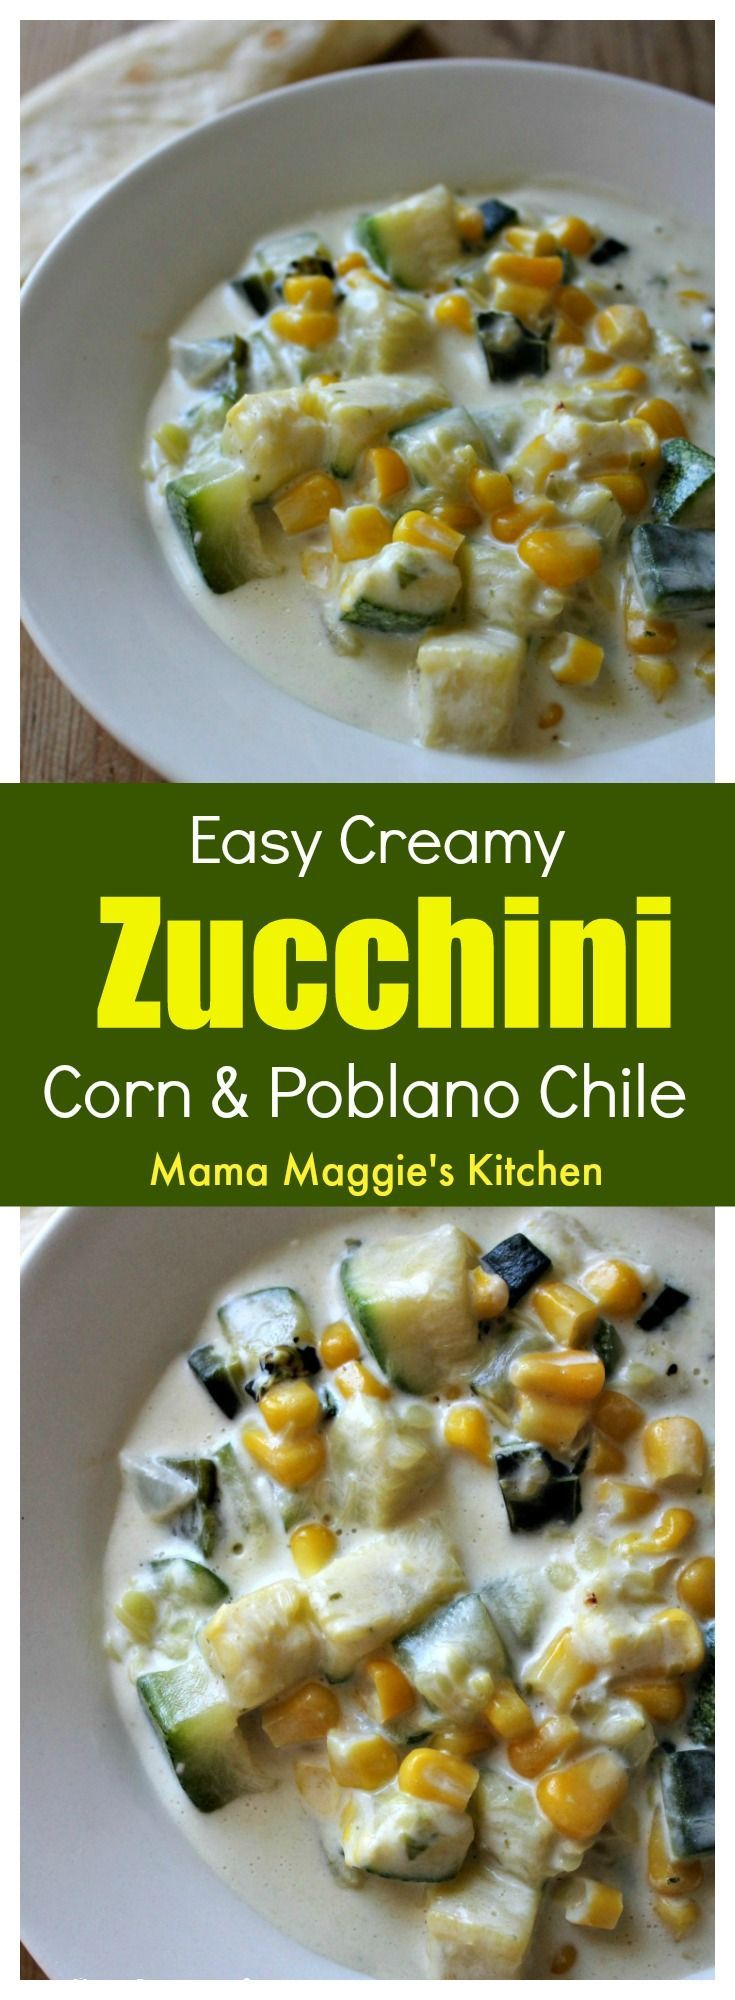 Easy Creamy Zucchini Corn and Poblano Chile (or Calabacitas con Elote y Rajas de Chile Poblano) is a yummy and delicious dish that comes together in minutes. It only takes a few ingredients, and food is ready! By Mama Maggie's Kitchen via @maggieunz #calabacitas #vegetarian #mexicanrecipes #mexicanfood #yummy #corn